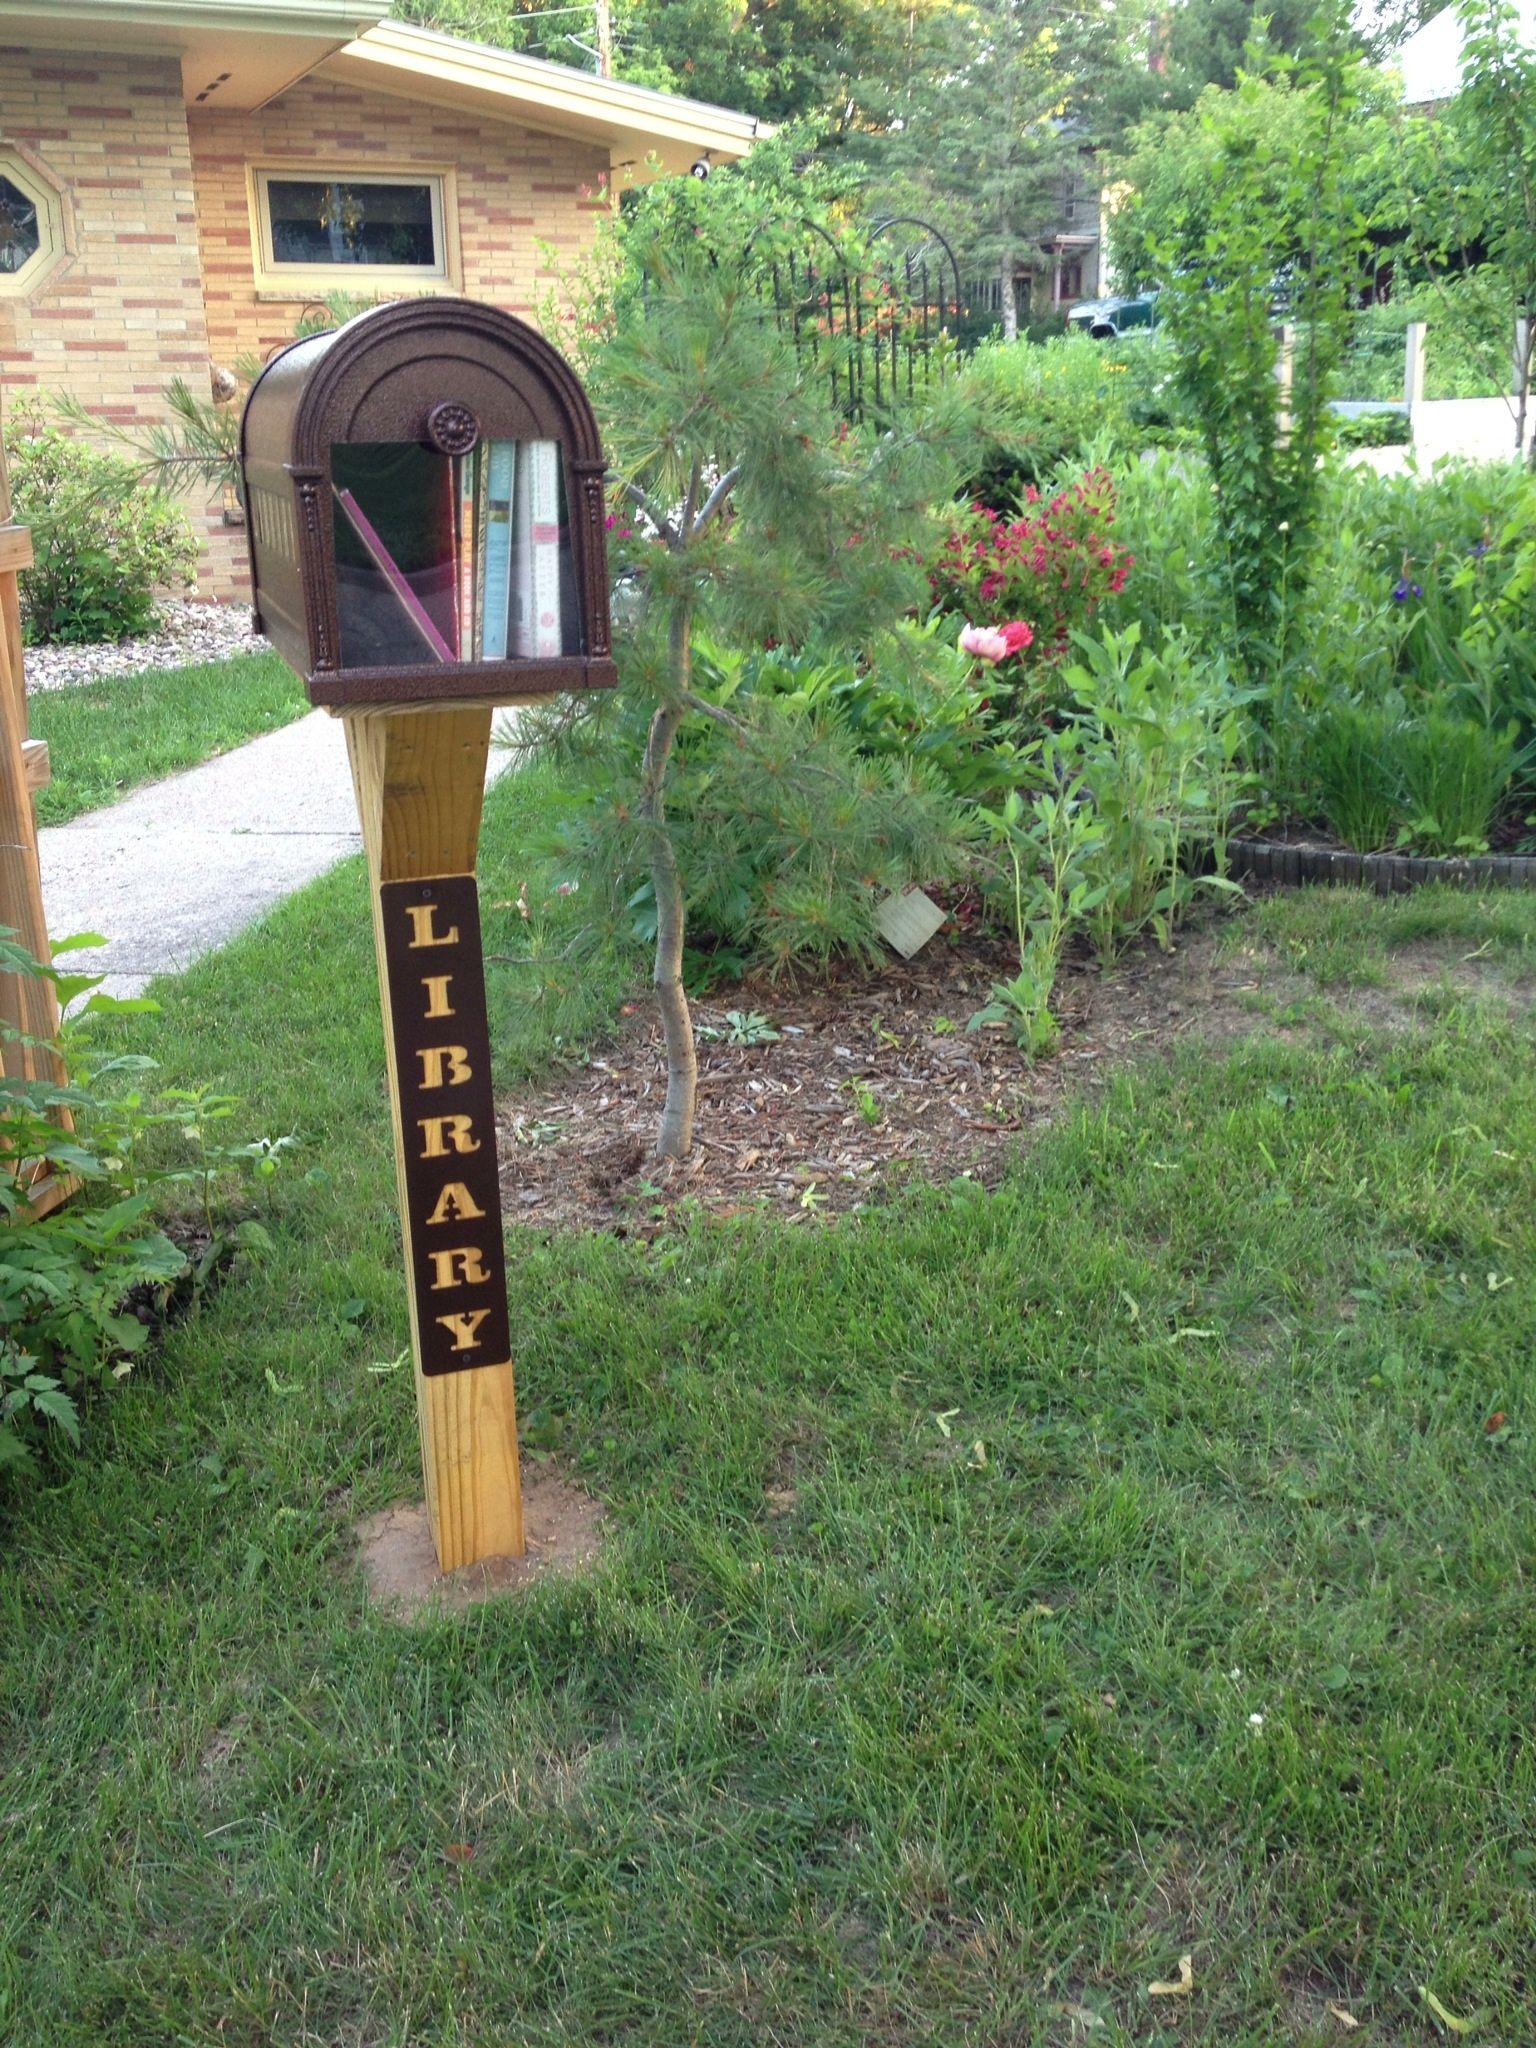 Maday Lange Baraboo Wi A Little Library Made From A Large